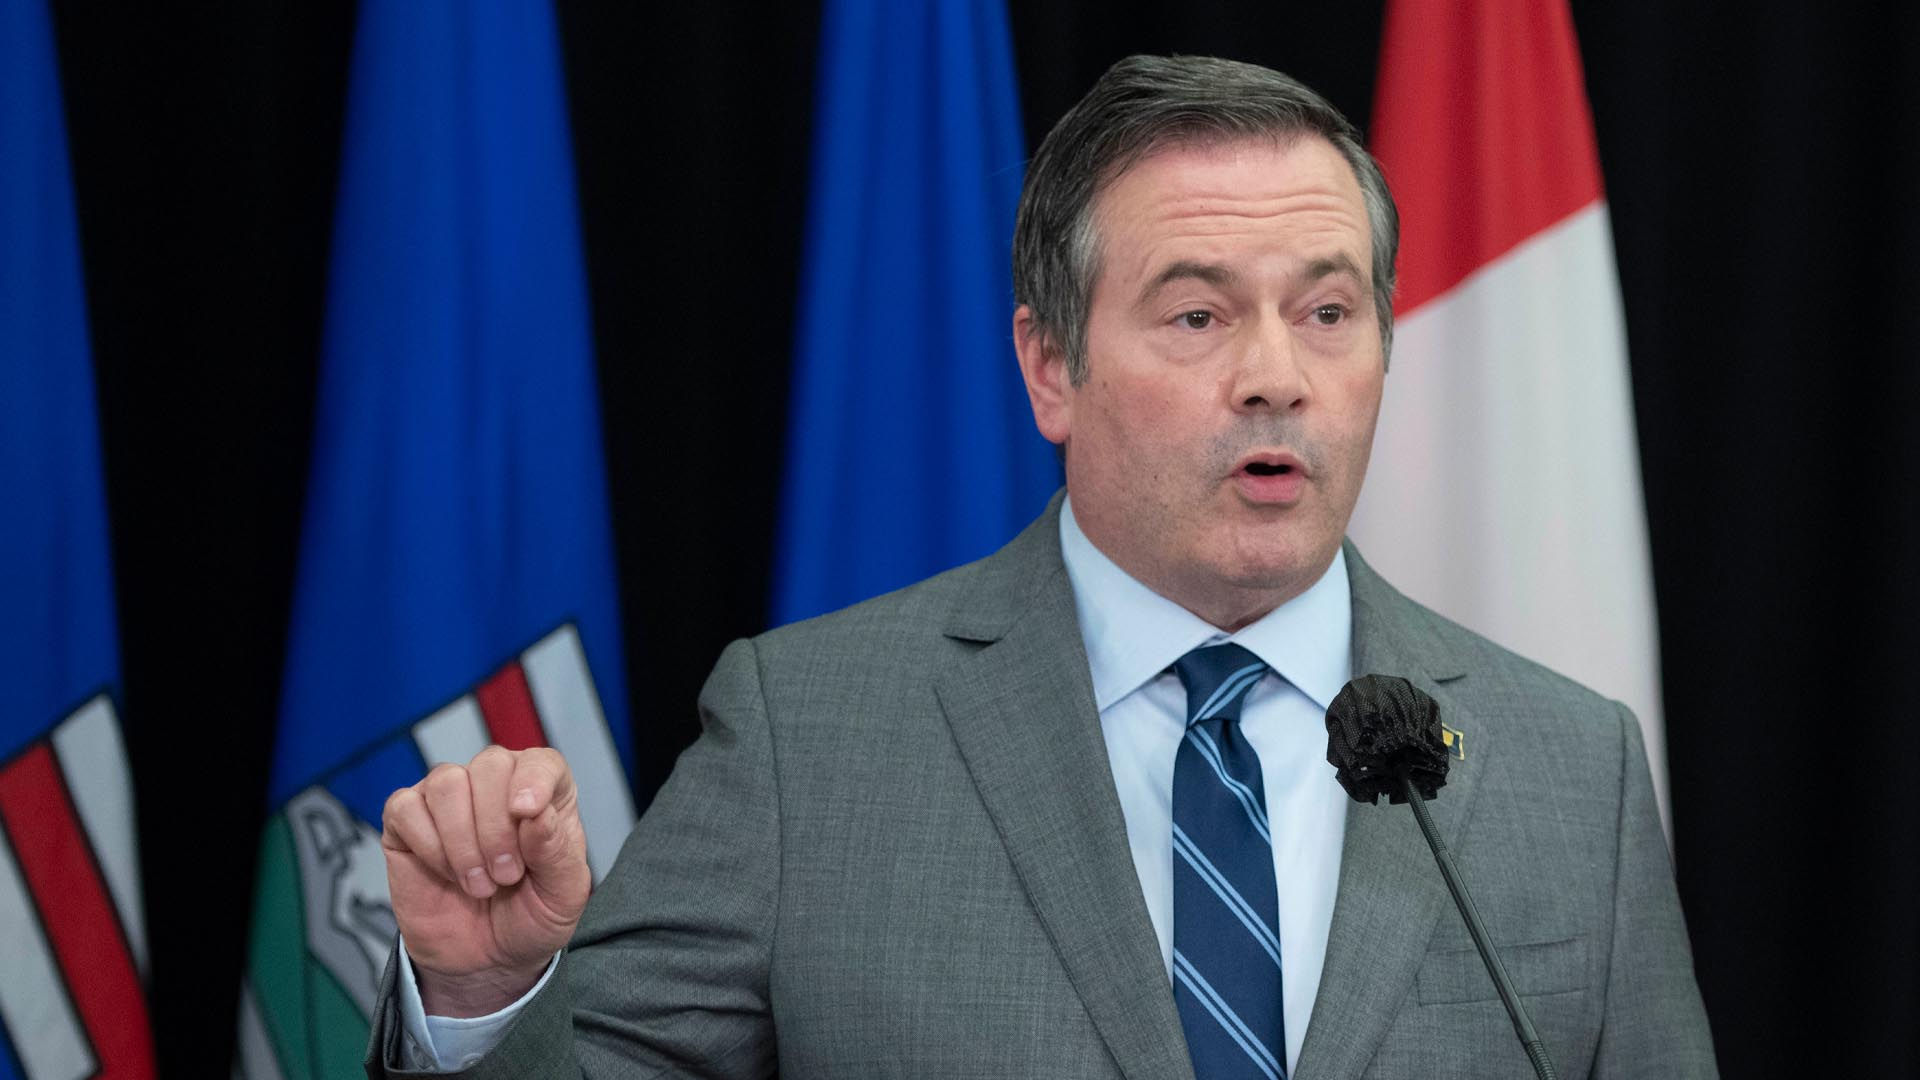 Alberta will not provide federal government with data on residents' vaccination status